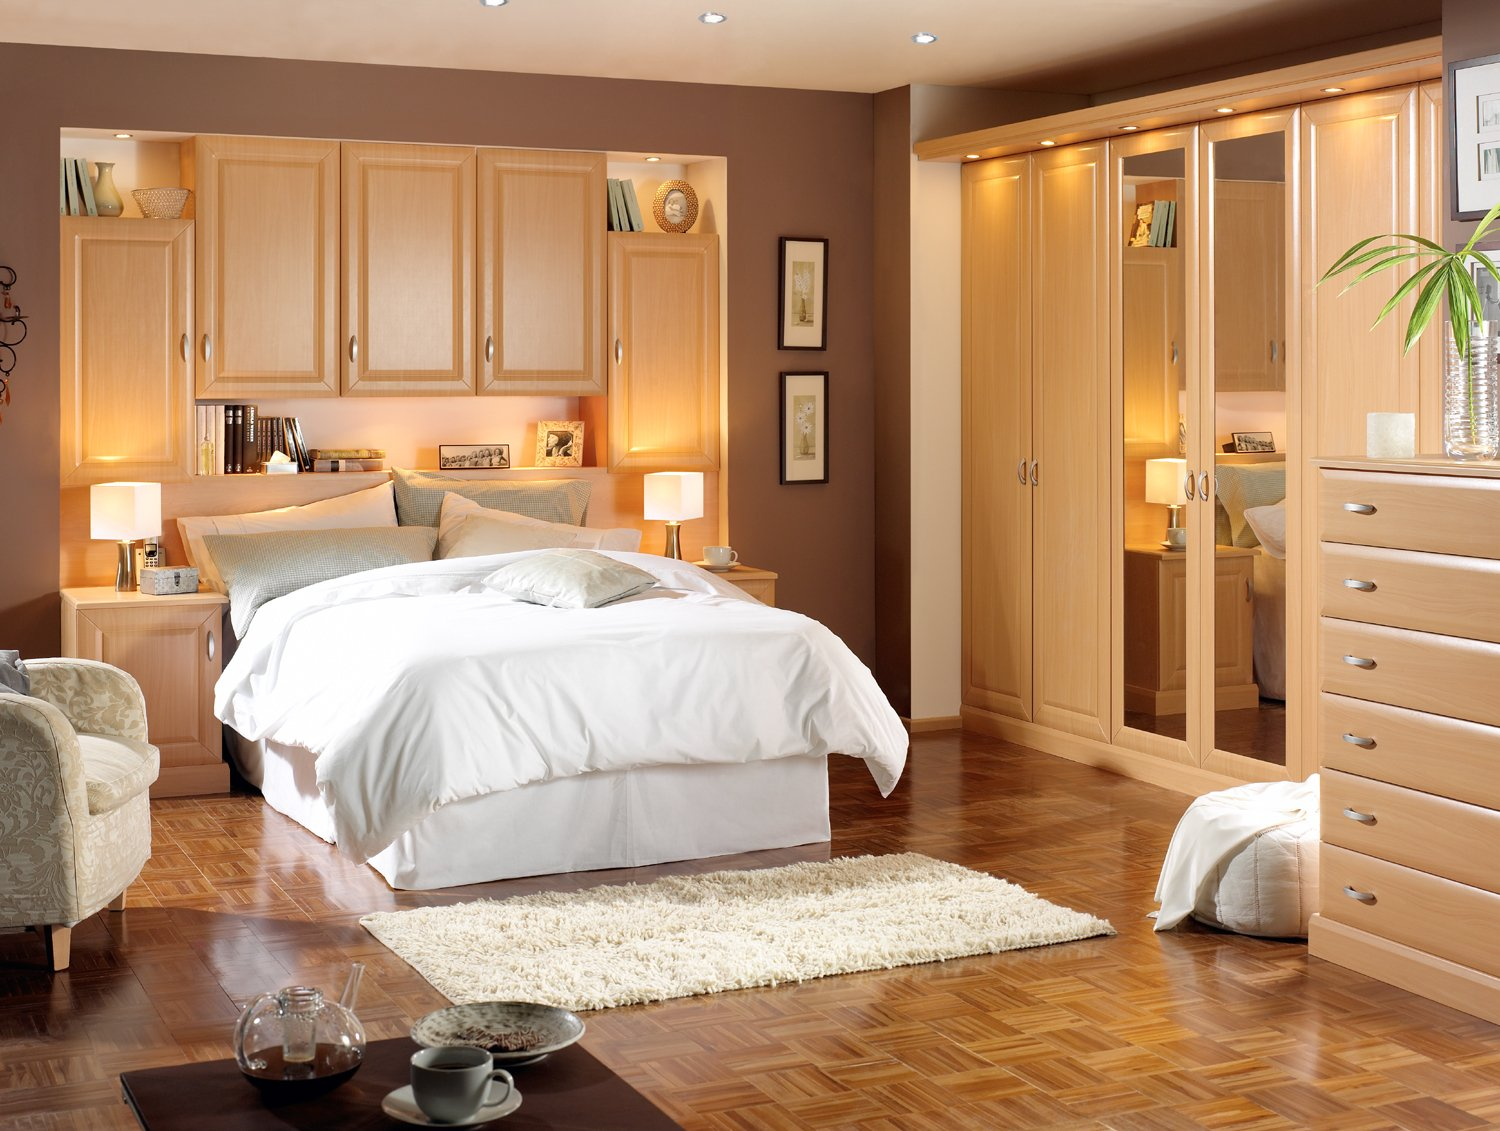 Bedrooms cupboard designs pictures an interior design for Designs for bedroom cupboards